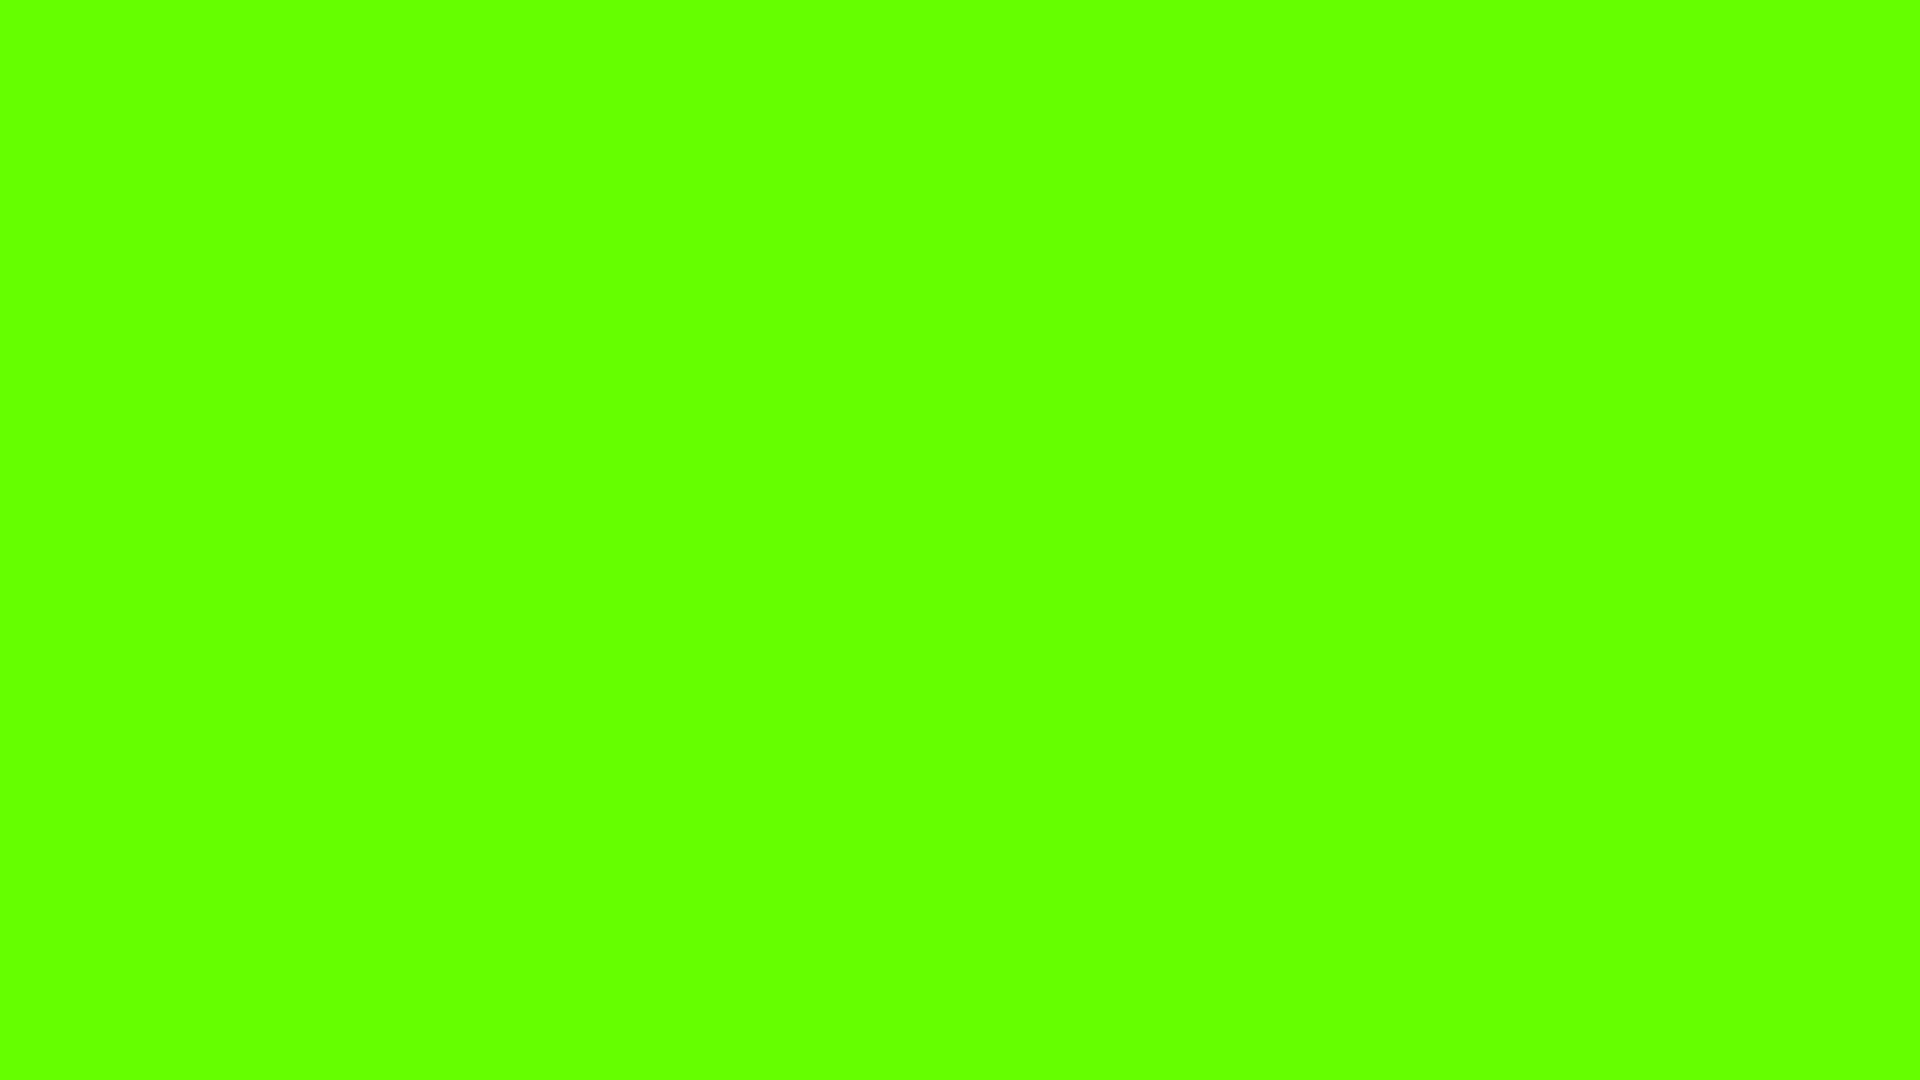 1024x600 Bright Green Solid Color Background |Bright Green Color Background